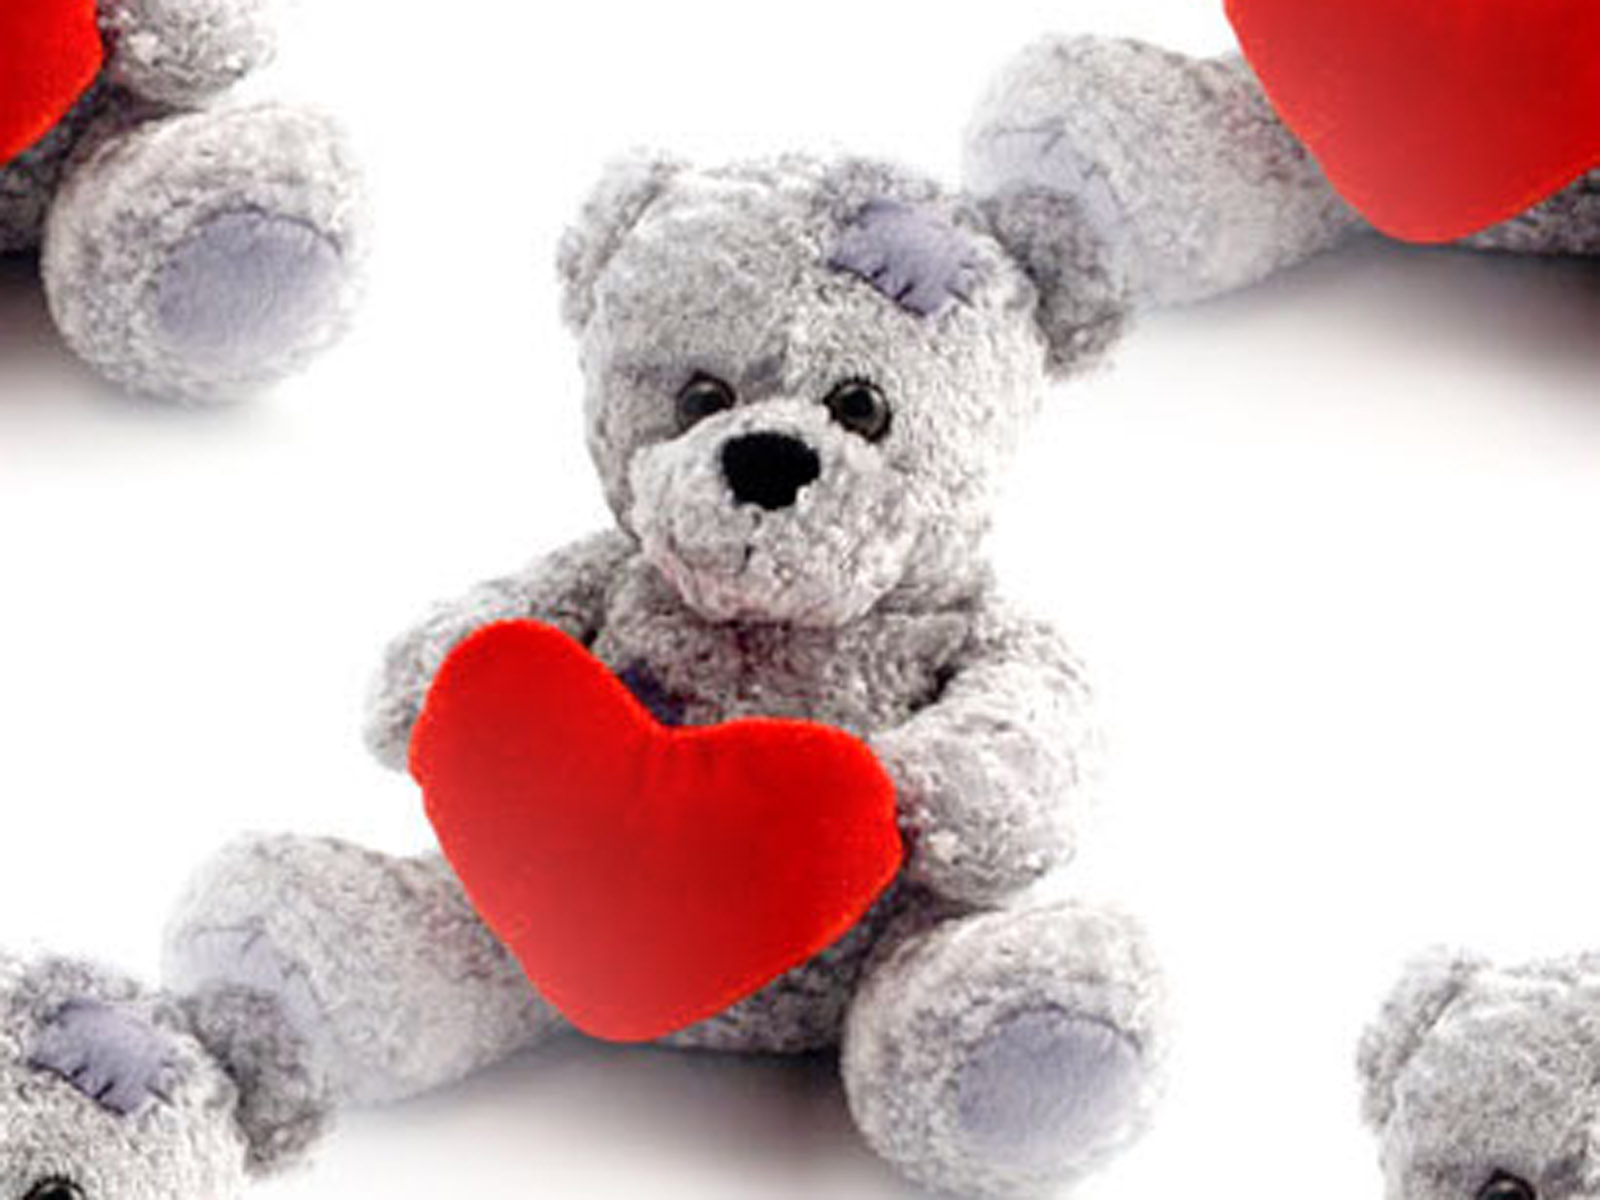 Love Teddy Bear Hd Wallpaper : Love Teddy Bear Wallpapers ~ HD Wallpapers